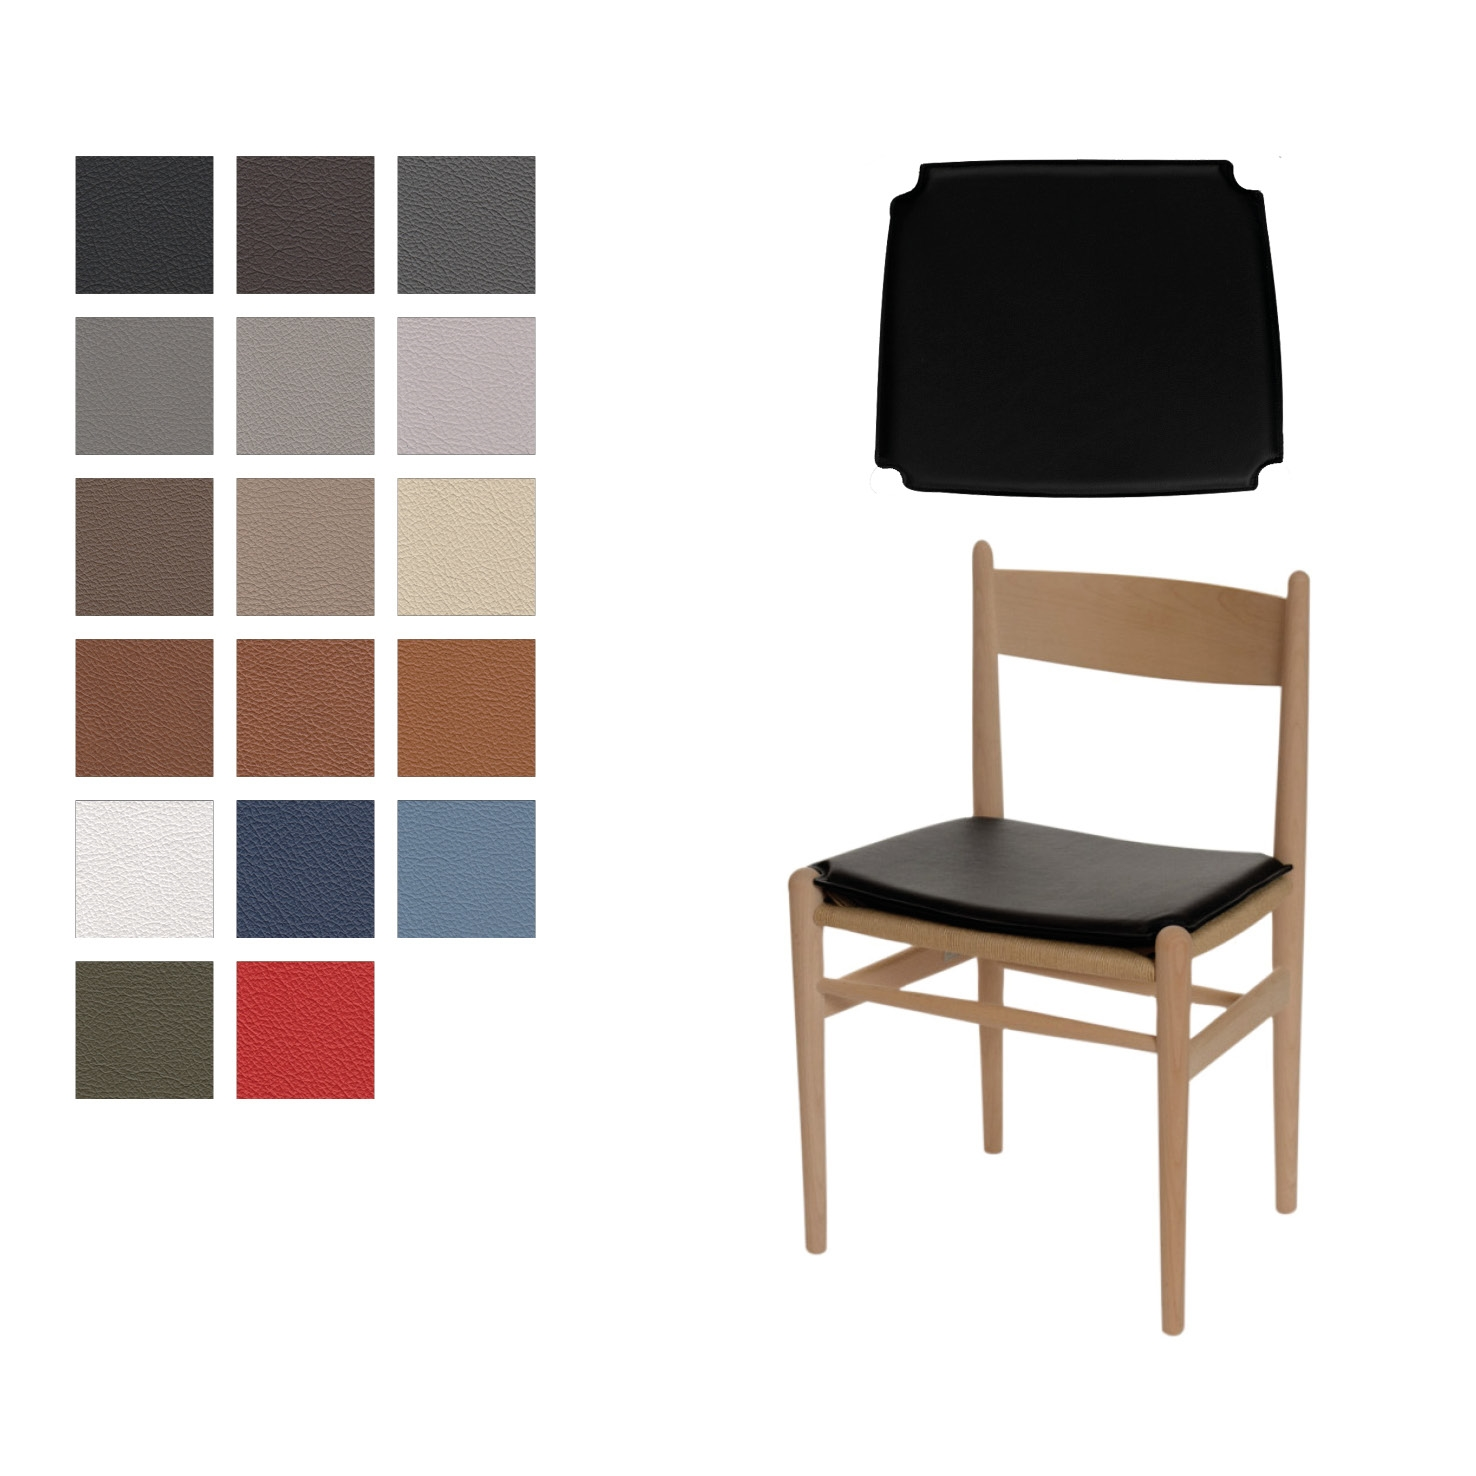 Hans J Wegner CH 36 Kissen (wendbare) in Basic Select Leder